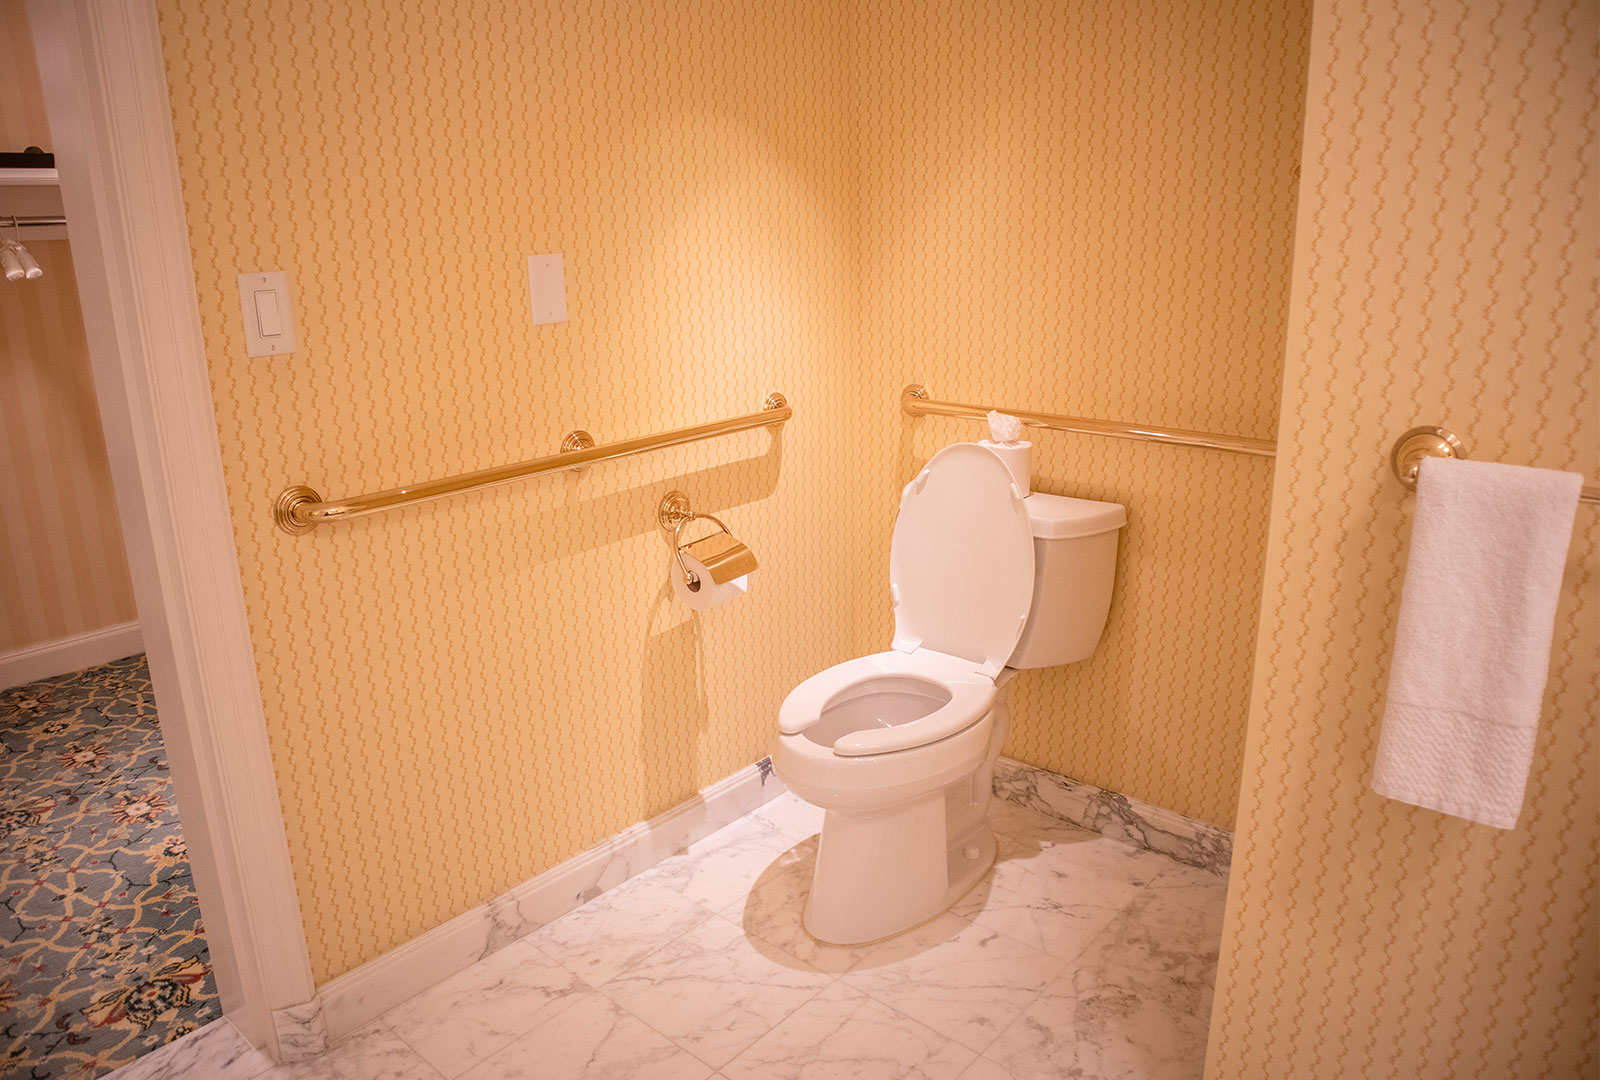 Bathroom Toilet With ADA Rails